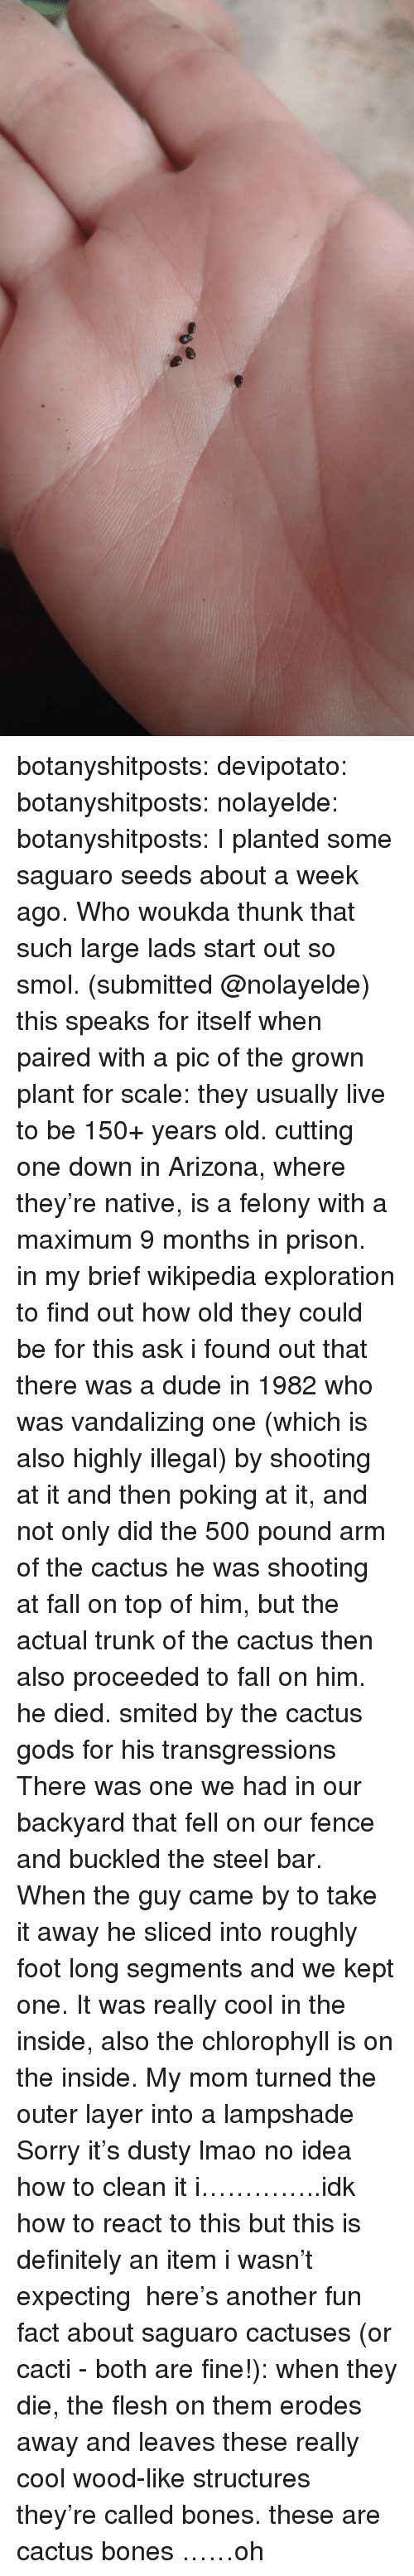 Bones, Definitely, and Dude: botanyshitposts: devipotato:  botanyshitposts:  nolayelde:  botanyshitposts:  I planted some saguaro seeds about a week ago. Who woukda thunk that such large lads start out so smol. (submitted @nolayelde) this speaks for itself when paired with a pic of the grown plant for scale: they usually live to be 150+ years old. cutting one down in Arizona, where they're native, is a felony with a maximum 9 months in prison. in my brief wikipedia exploration to find out how old they could be for this ask i found out that there was a dude in 1982 who was vandalizing one (which is also highly illegal) by shooting at it and then poking at it, and not only did the 500 pound arm of the cactus he was shooting at fall on top of him, but the actual trunk of the cactus then also proceeded to fall on him. he died. smited by the cactus gods for his transgressions  There was one we had in our backyard that fell on our fence and buckled the steel bar. When the guy came by to take it away he sliced into roughly foot long segments and we kept one. It was really cool in the inside, also the chlorophyll is on the inside. My mom turned the outer layer into a lampshade Sorry it's dusty lmao no idea how to clean it  i…………..idk how to react to this but this is definitely an item i wasn't expecting  here's another fun fact about saguaro cactuses (or cacti - both are fine!): when they die, the flesh on them erodes away and leaves these really cool wood-like structures they're called bones. these are cactus bones  ……oh